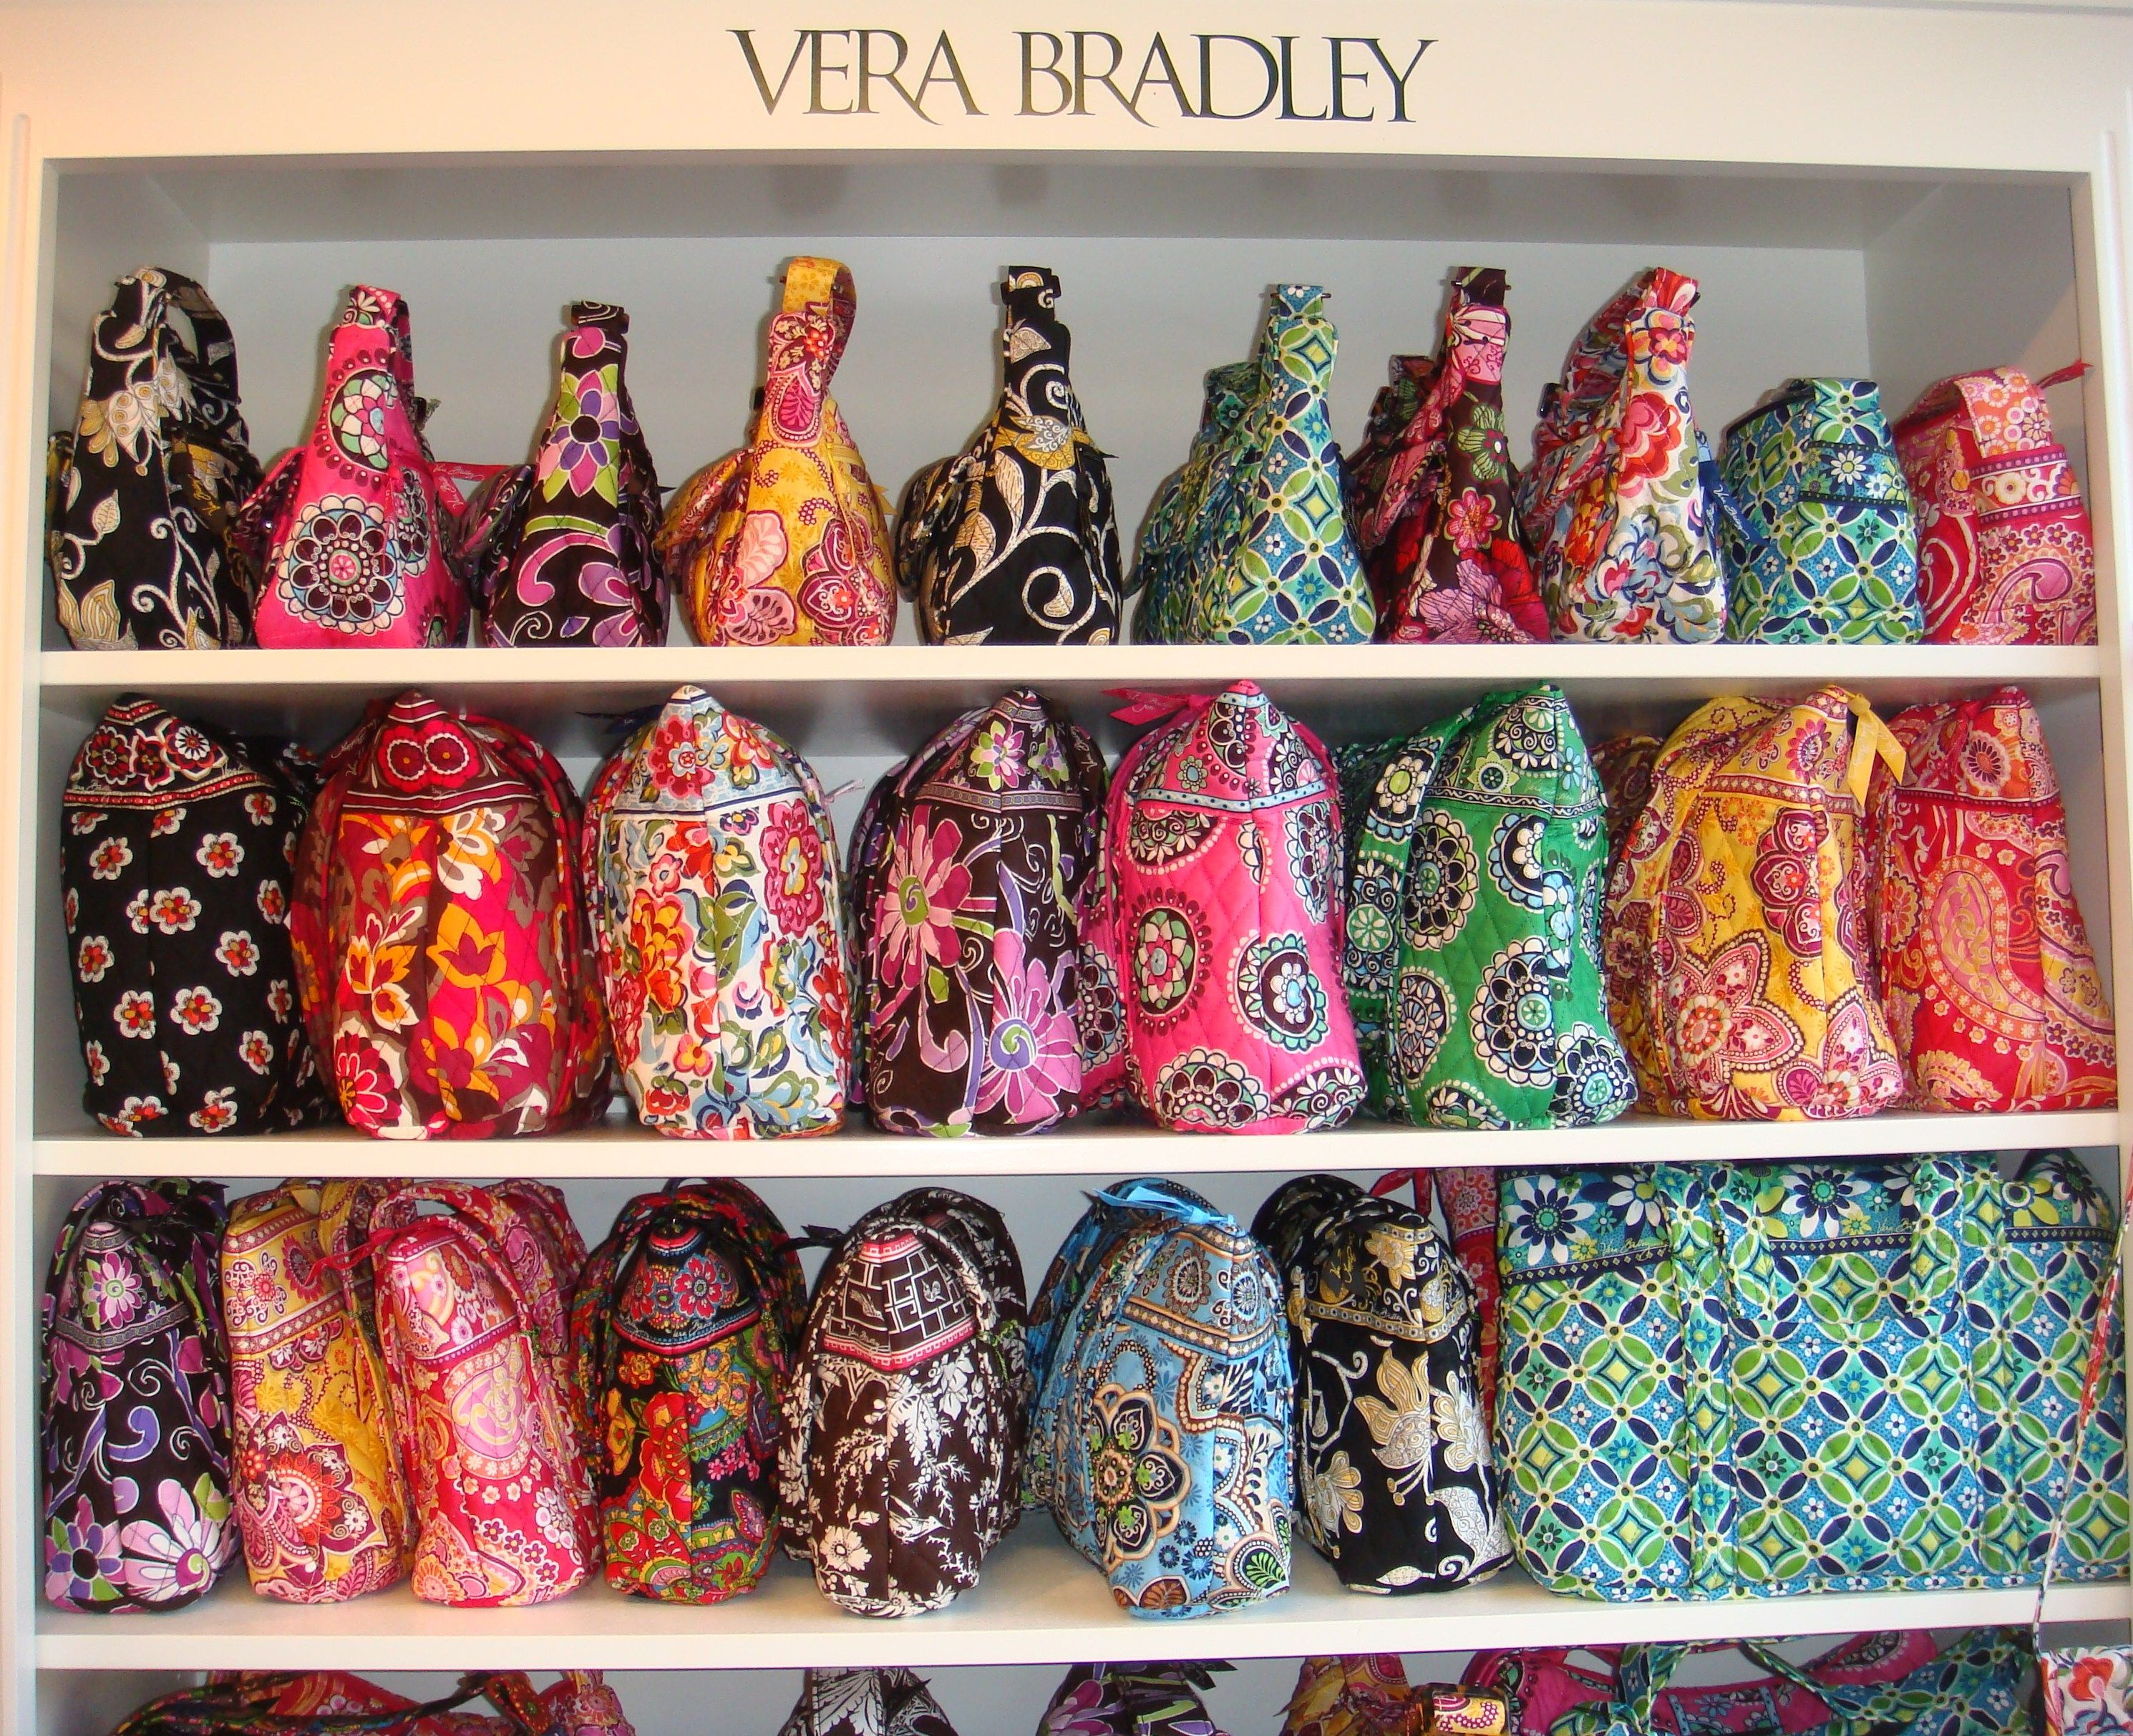 17 Best images about Handbags on Pinterest | Hand bags, Hermes ... : quilted bags like vera bradley - Adamdwight.com